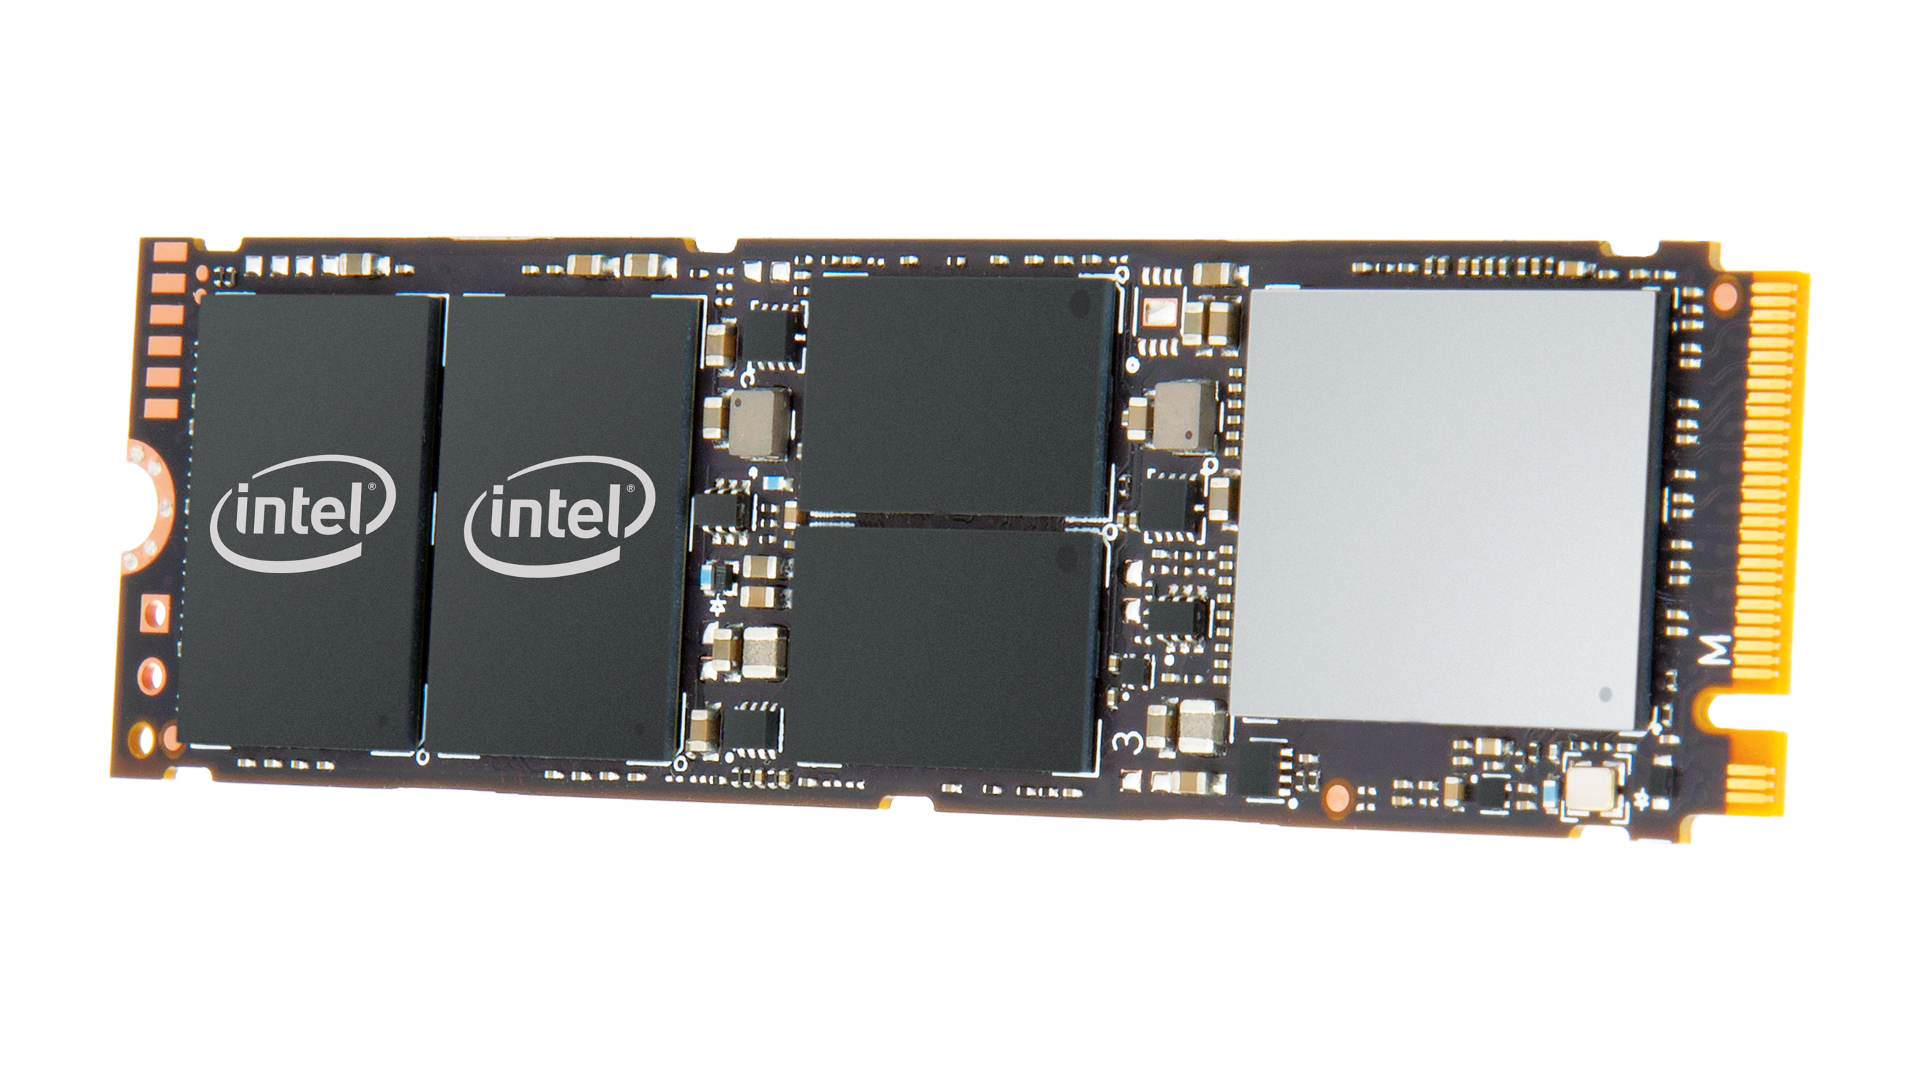 SSD 512GB Intel 760p M.2 80mm PCIe 3.0 3D2 TLC